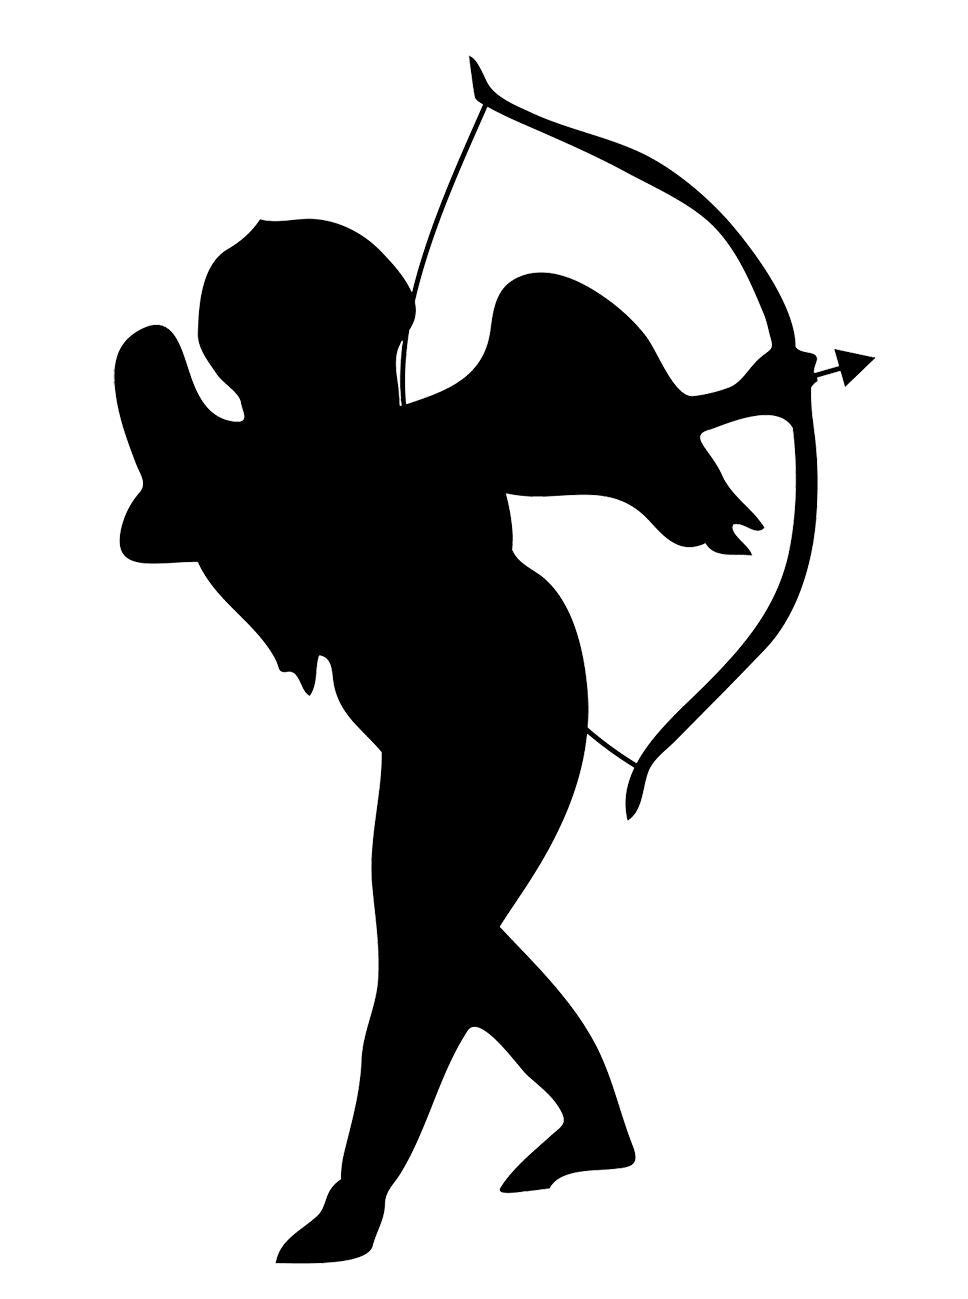 Christmas angel clipart black and white jpg freeuse Christmas Angels Silhouette at GetDrawings.com | Free for personal ... jpg freeuse